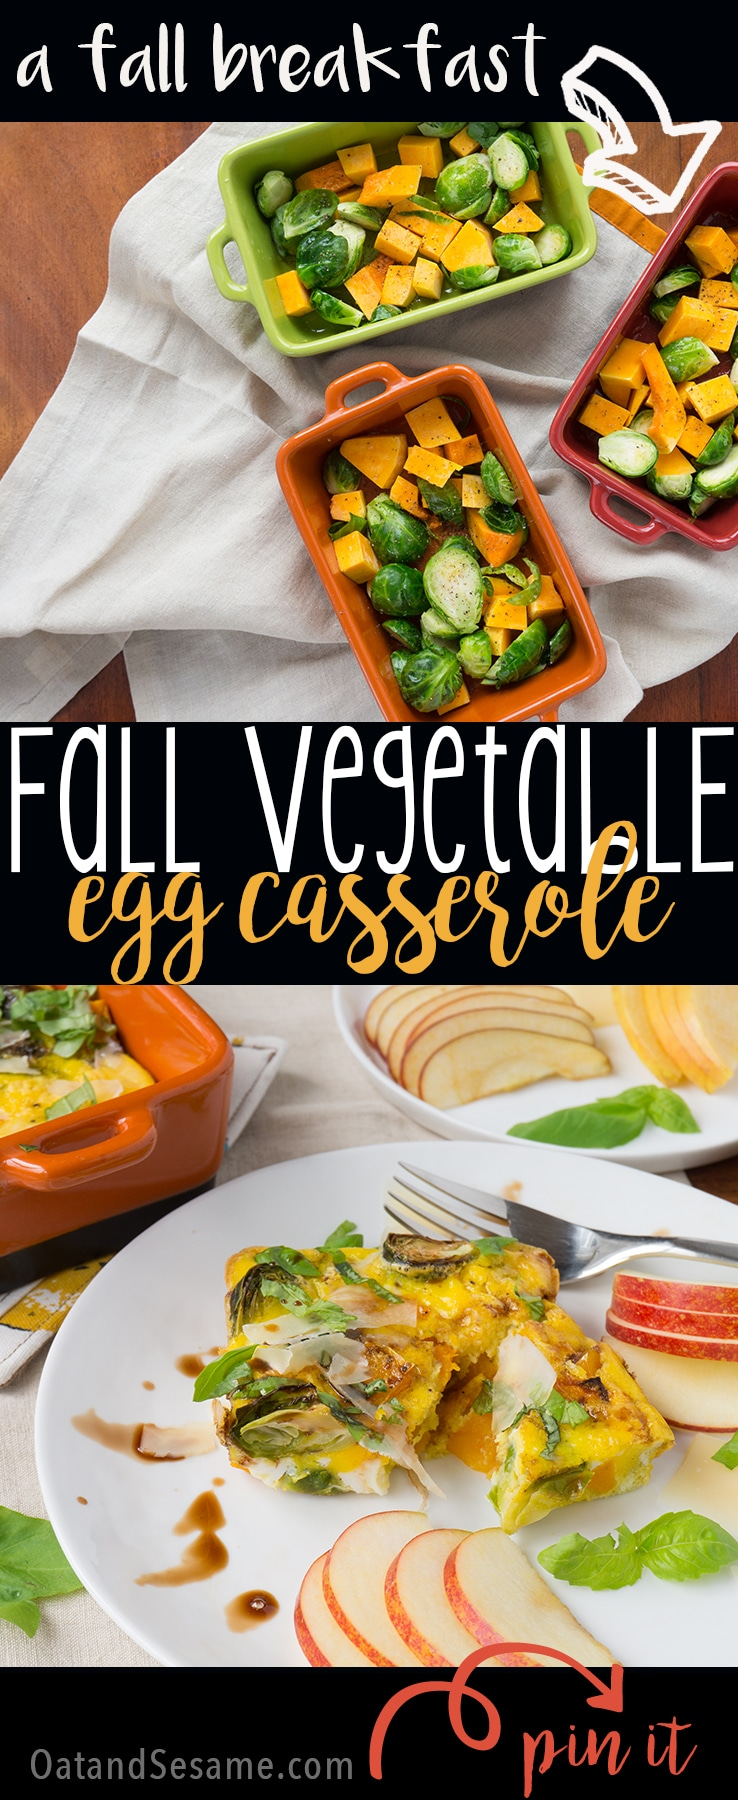 a fall inspired breakfast casserole - brussels sprouts, butternut squash, shaved parmesan and basil | Recipe at OatandSesame.com